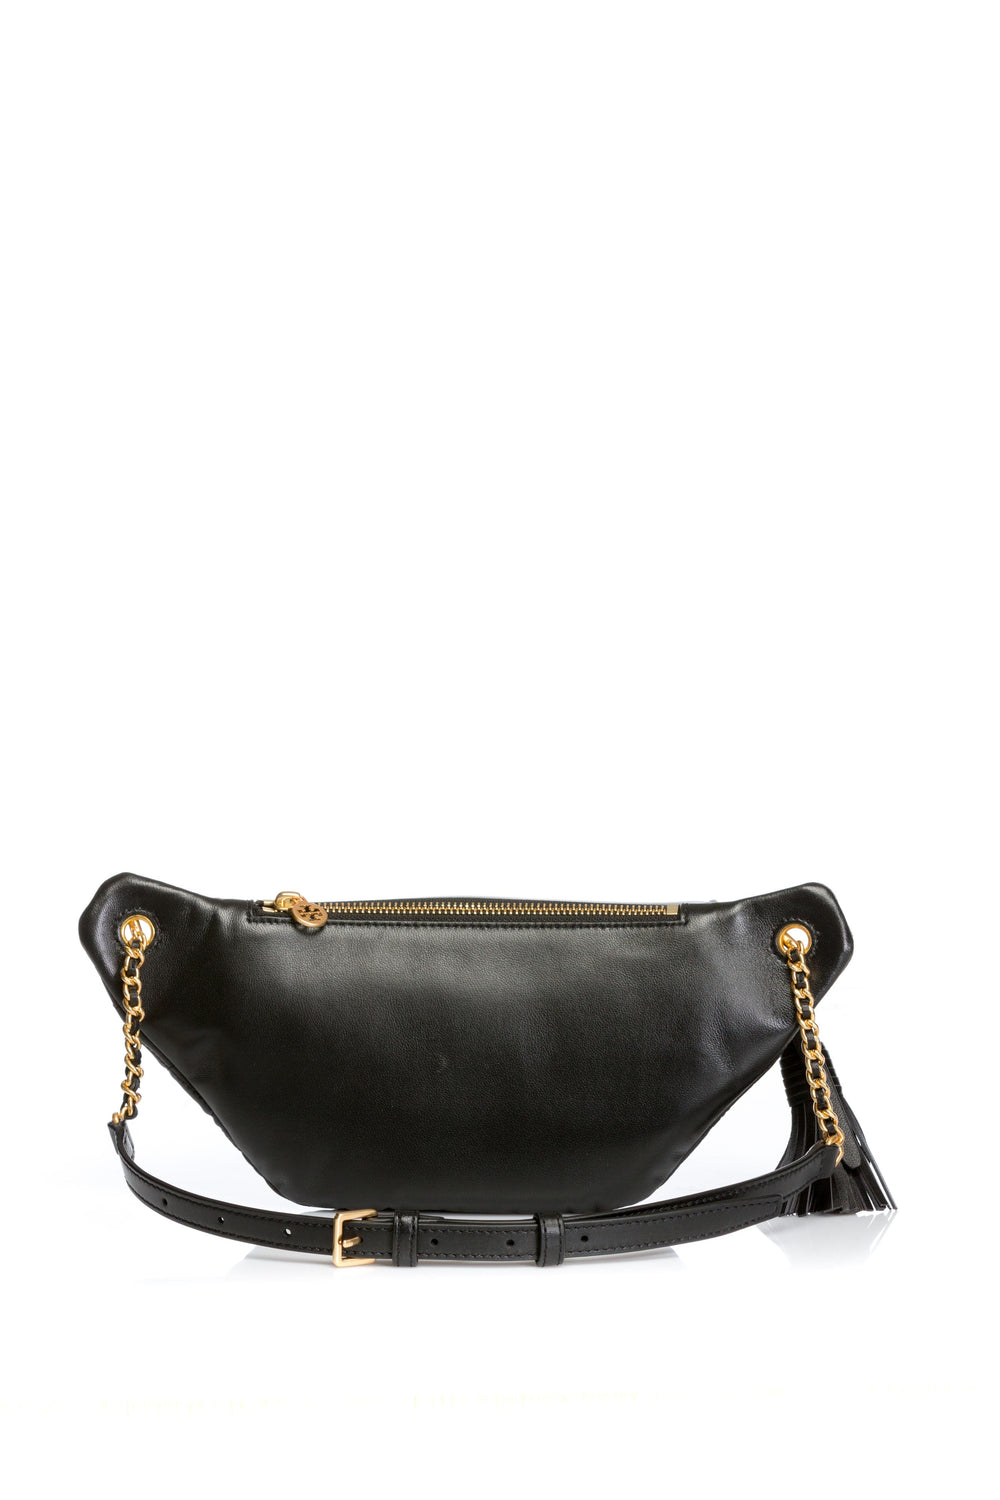 Borseta Fleming Tory Burch